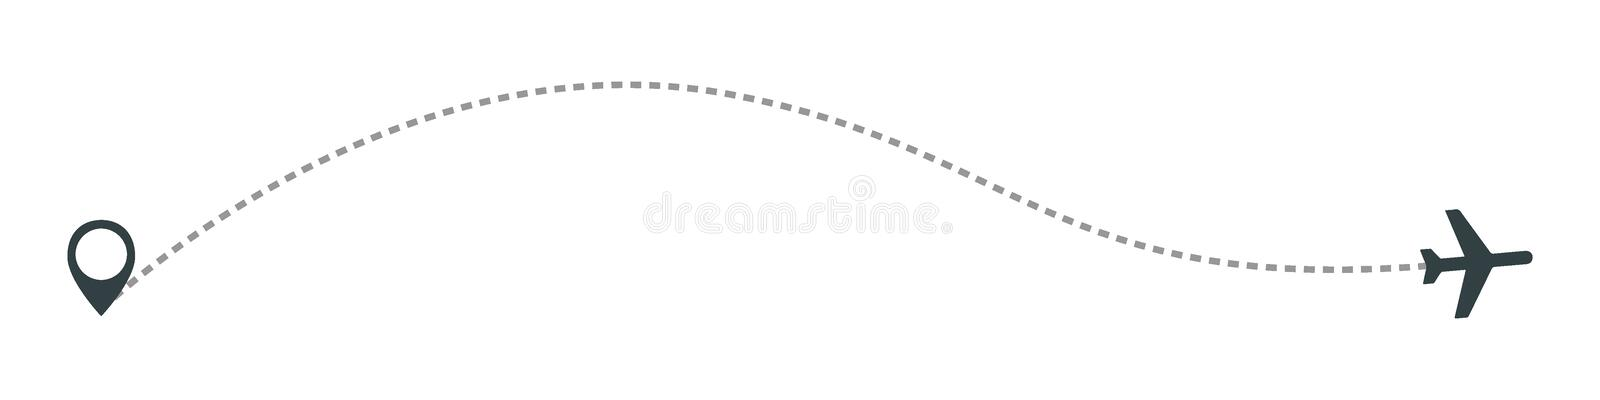 Airplane line path vector icon of air plane flight route with start point and dash line trace. Aircraft clip art icon with route path track in black and white vector illustration